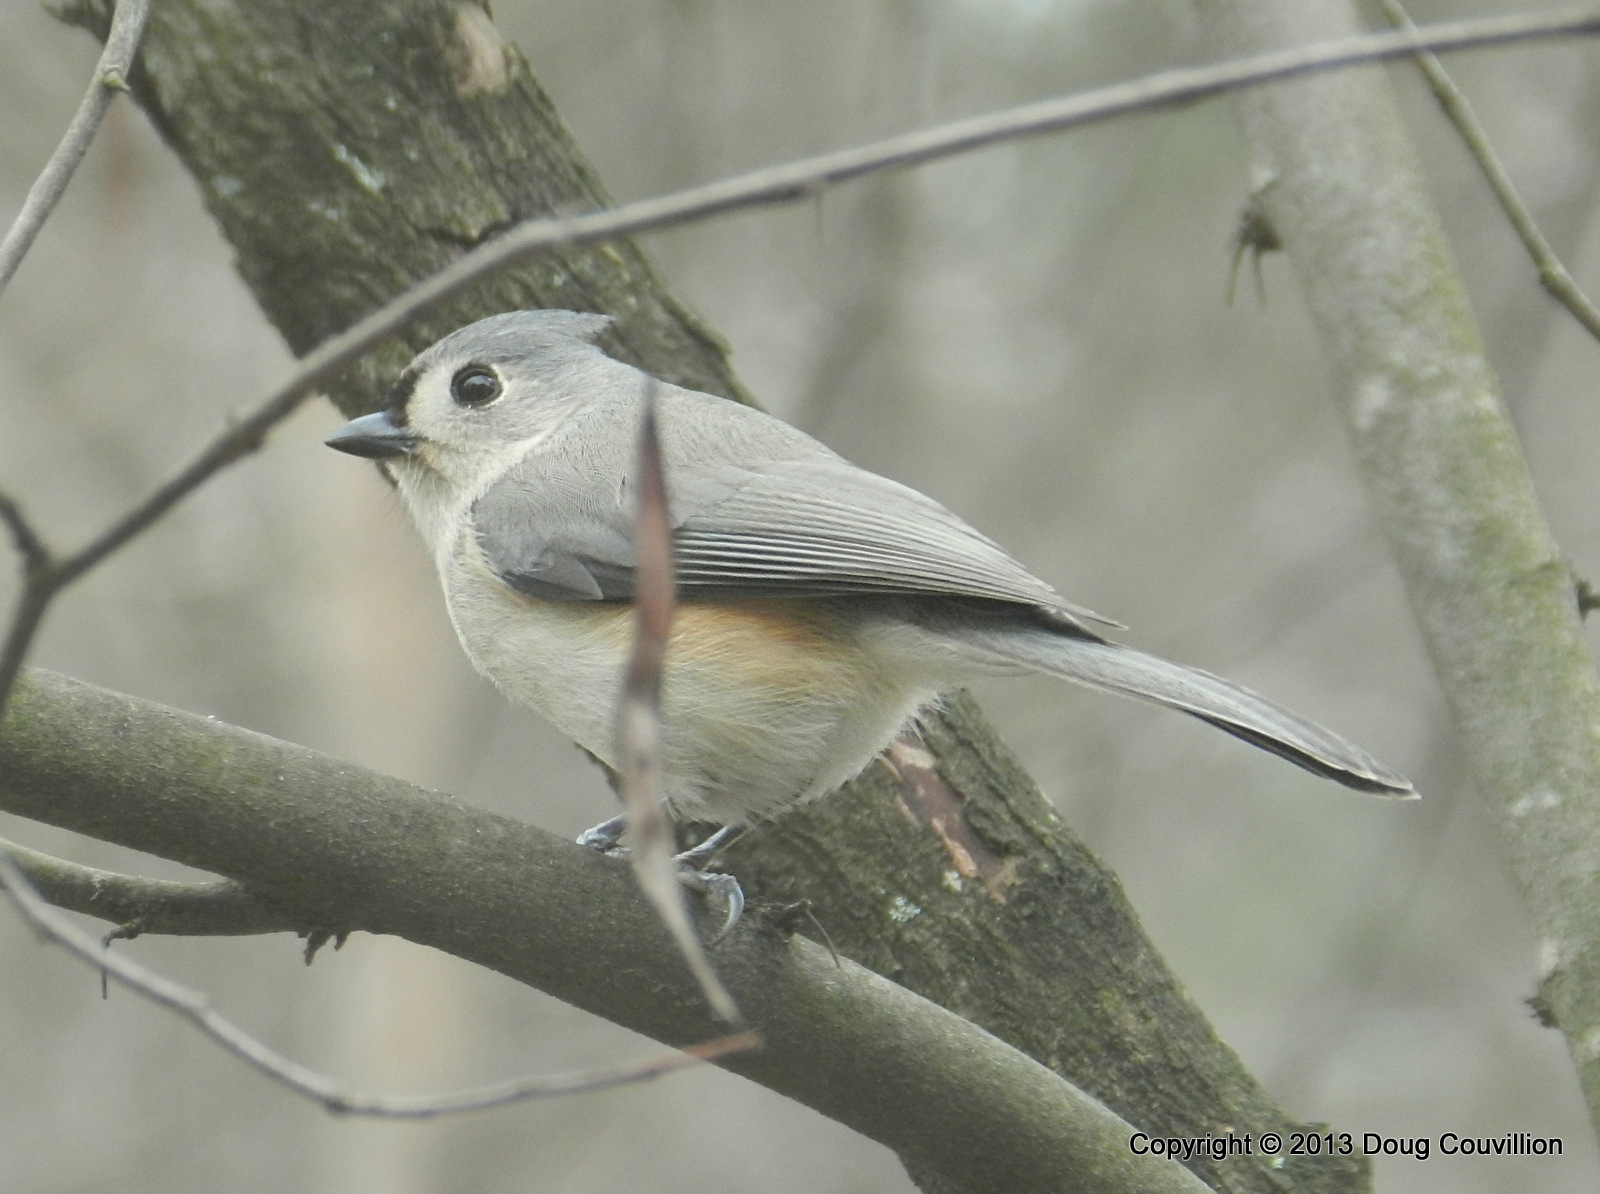 photograph of a tufted titmouse